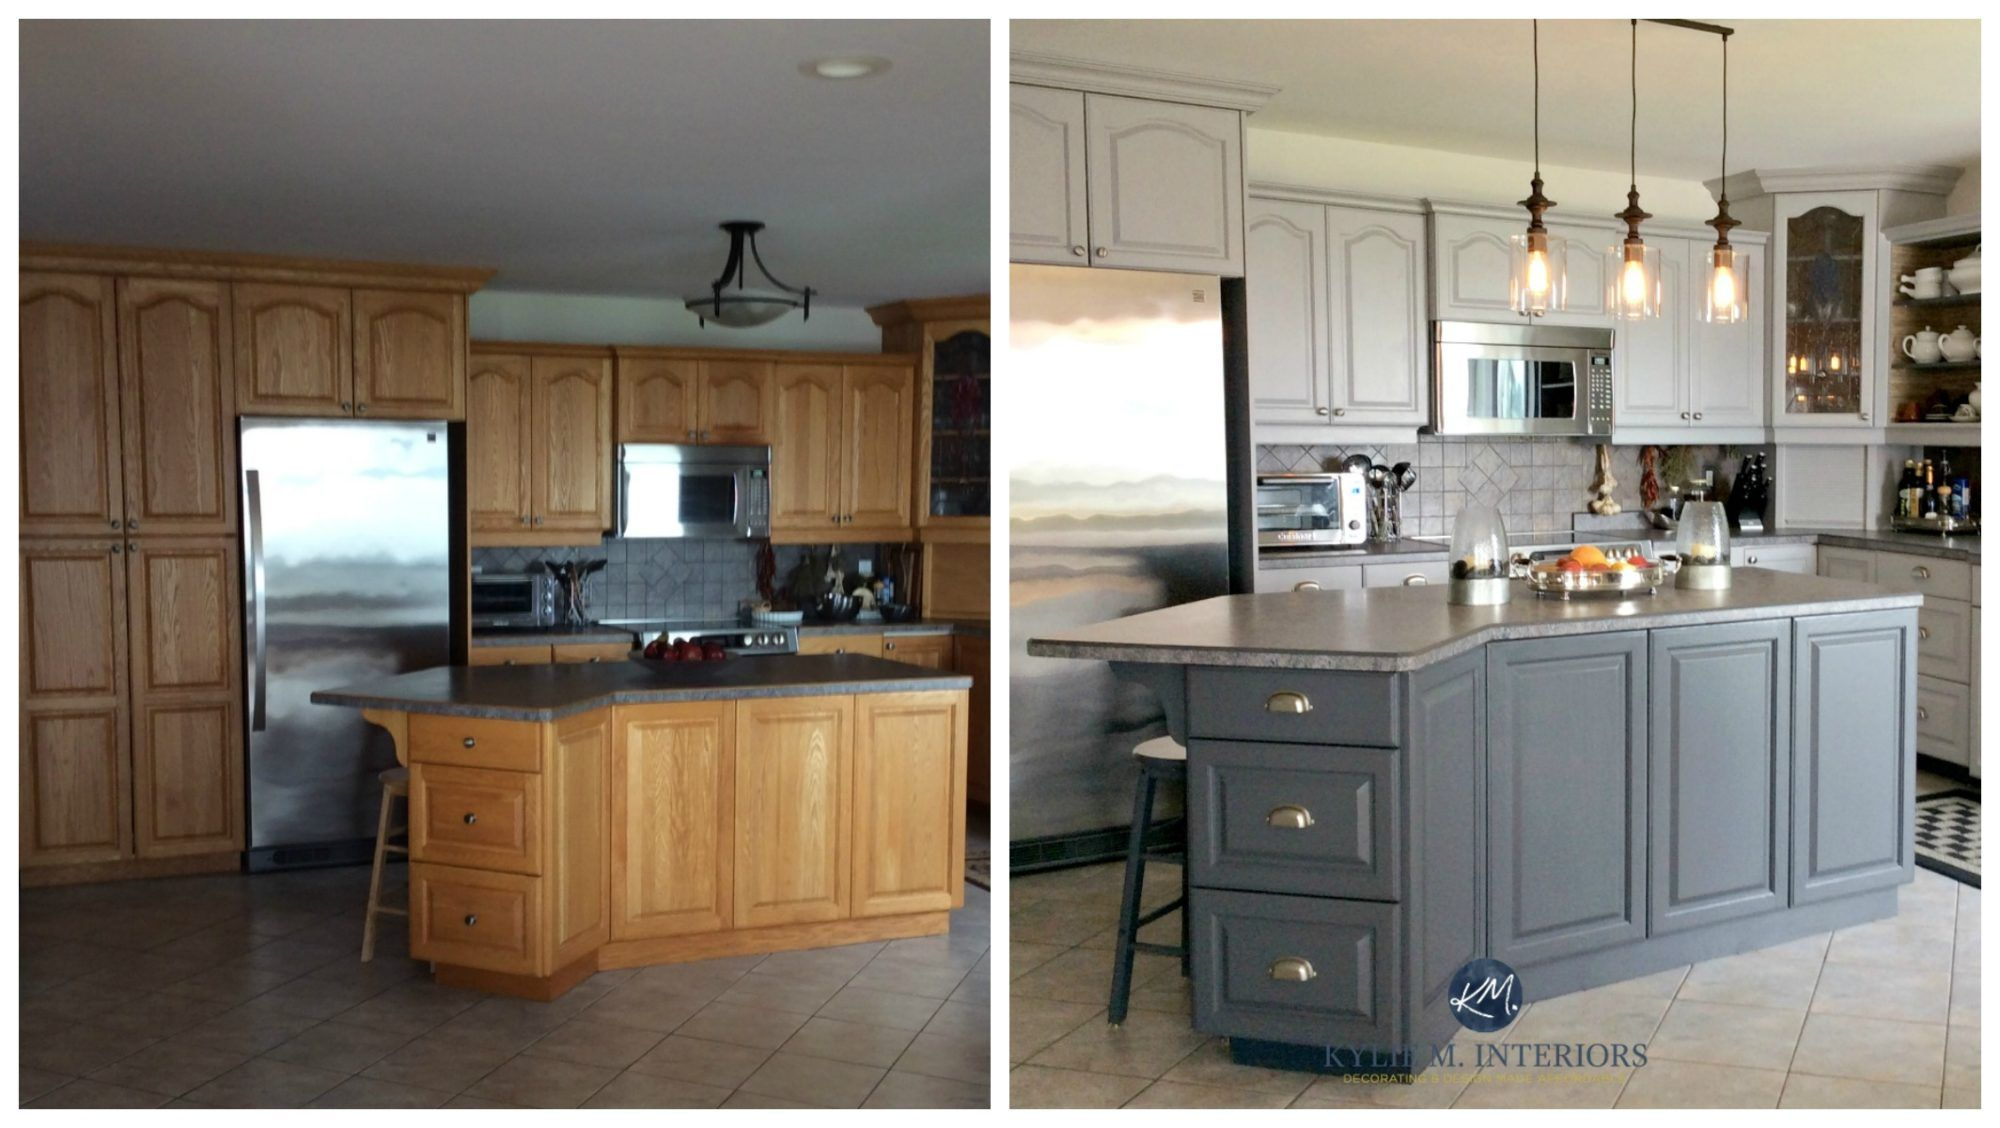 Before And After Painted Oak Kitchen Cabinets In Gray Kylie M E Design Kitchen Renovation Kitchen Cabinets Before And After New Kitchen Cabinets